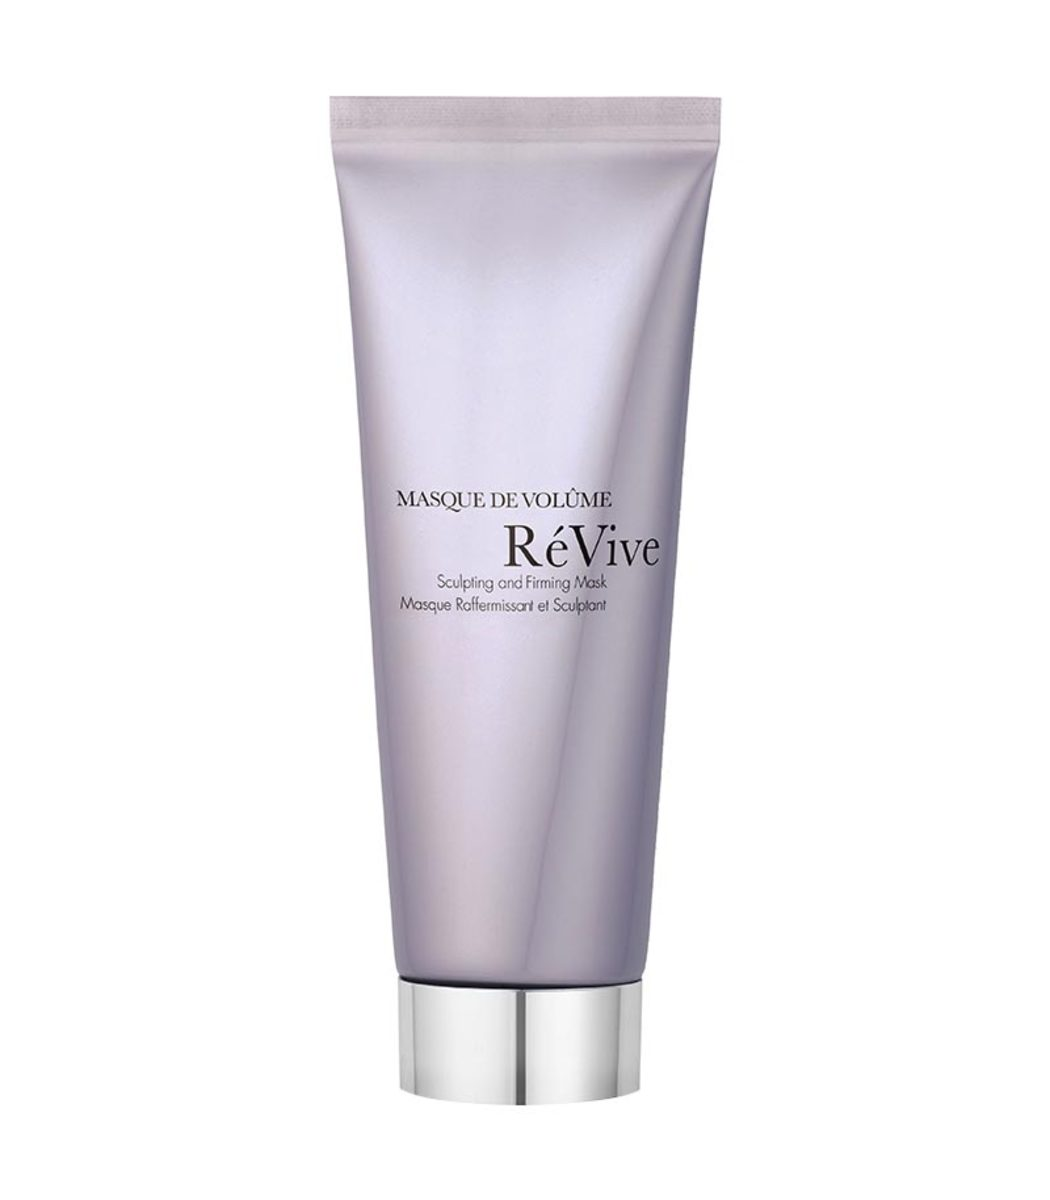 REVIVE Masque De Volume - Sculpting and Firming Mask